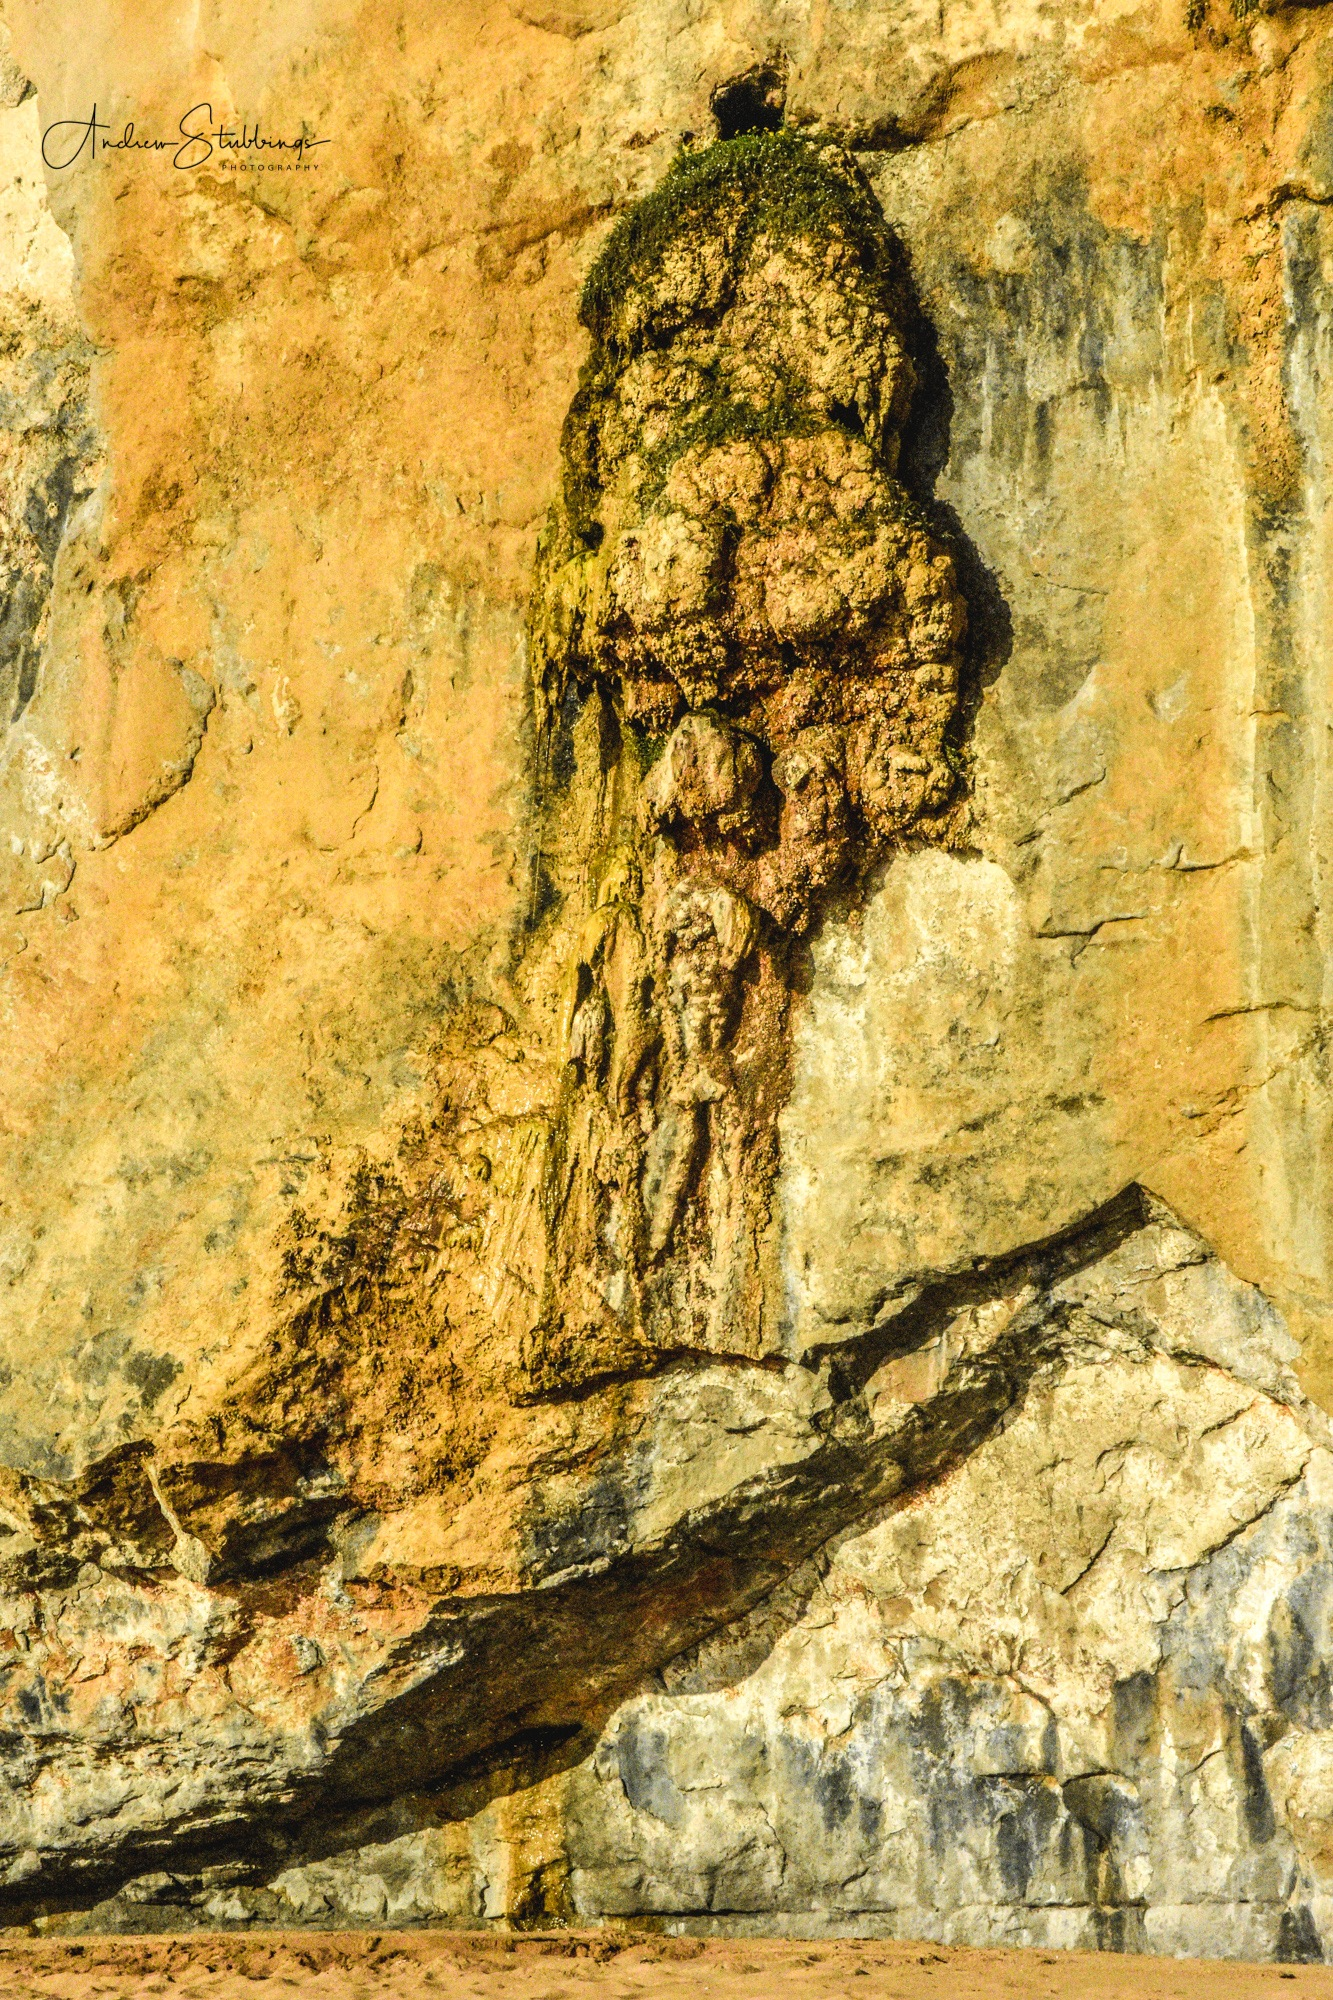 Face in the Cliff by Andrew Stubbings